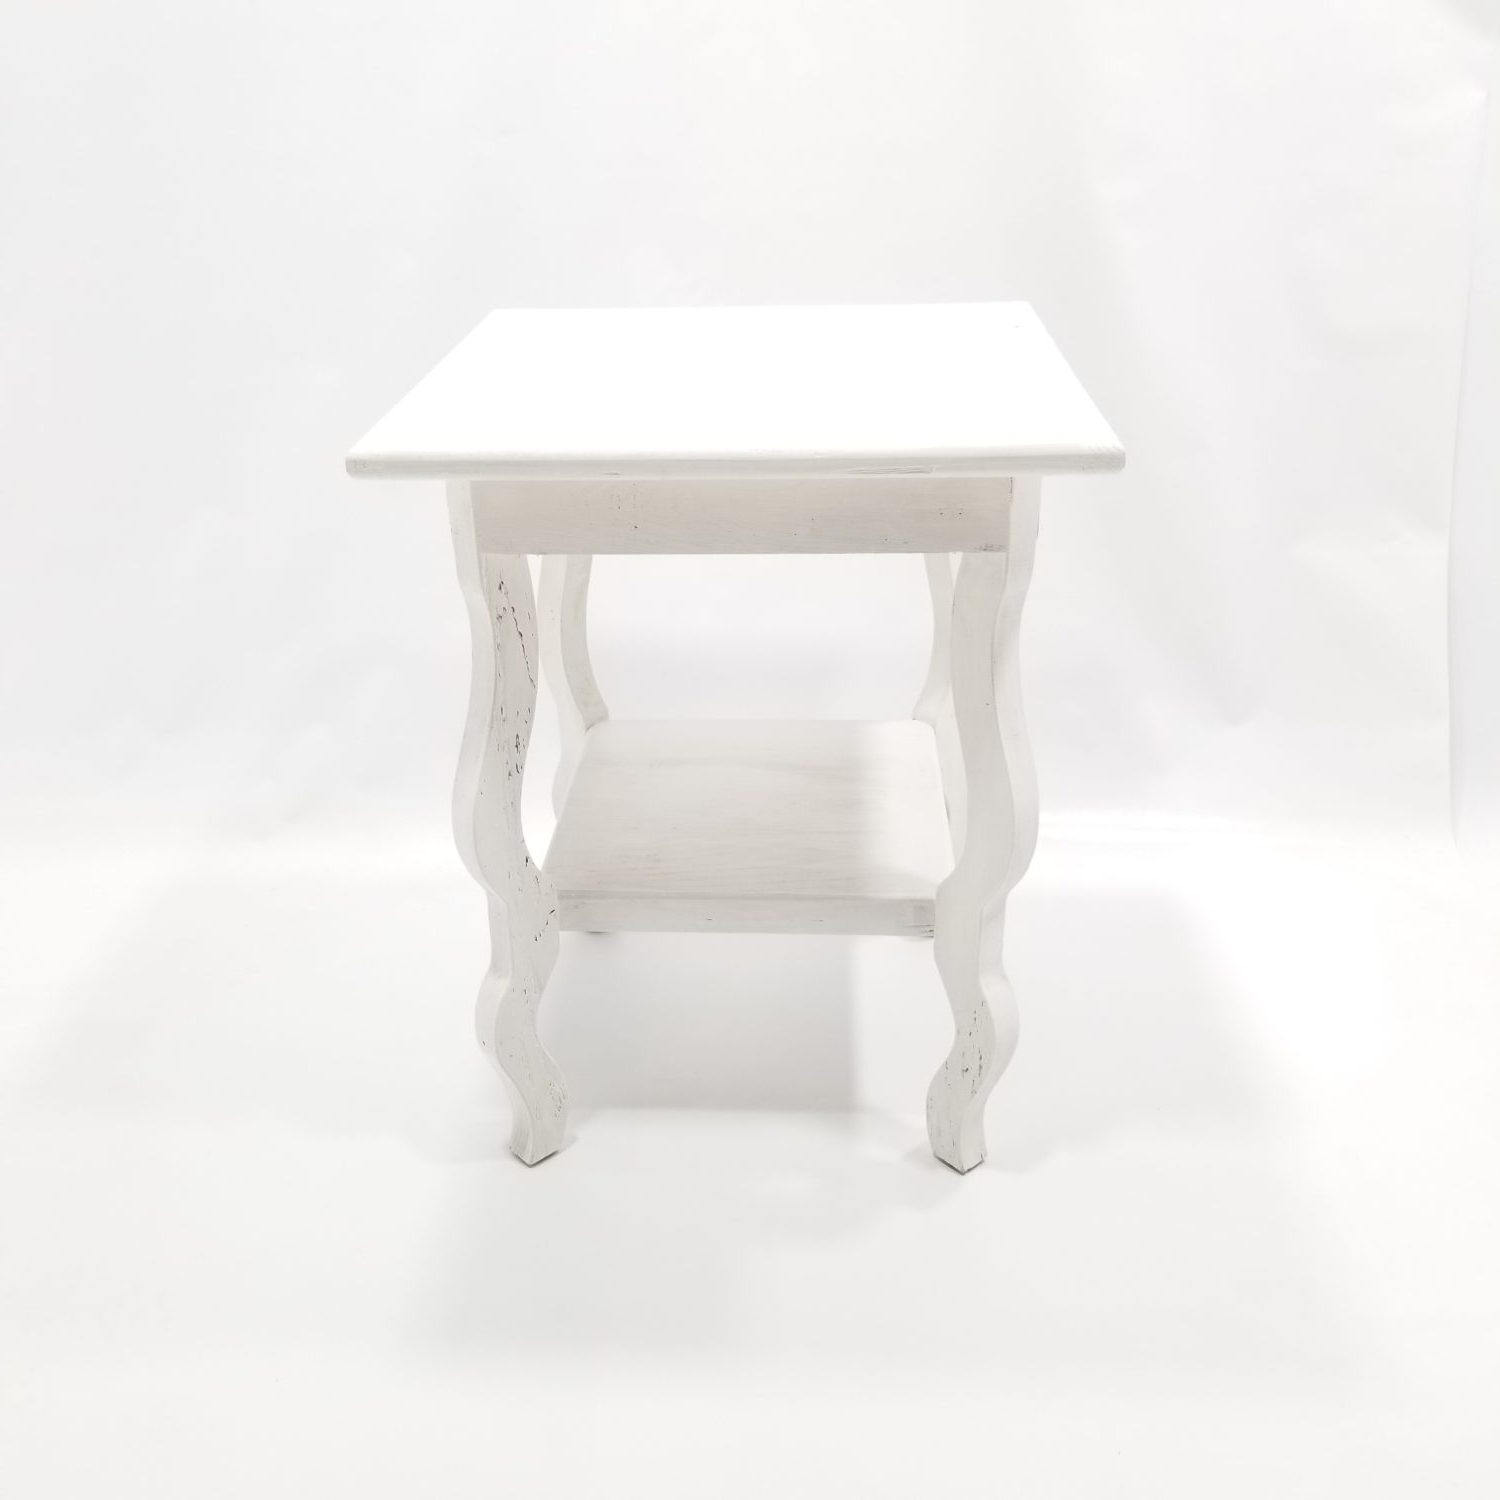 Limewash Coffee Tables Pertaining To Most Up To Date Lime Wash Side Table (View 18 of 20)